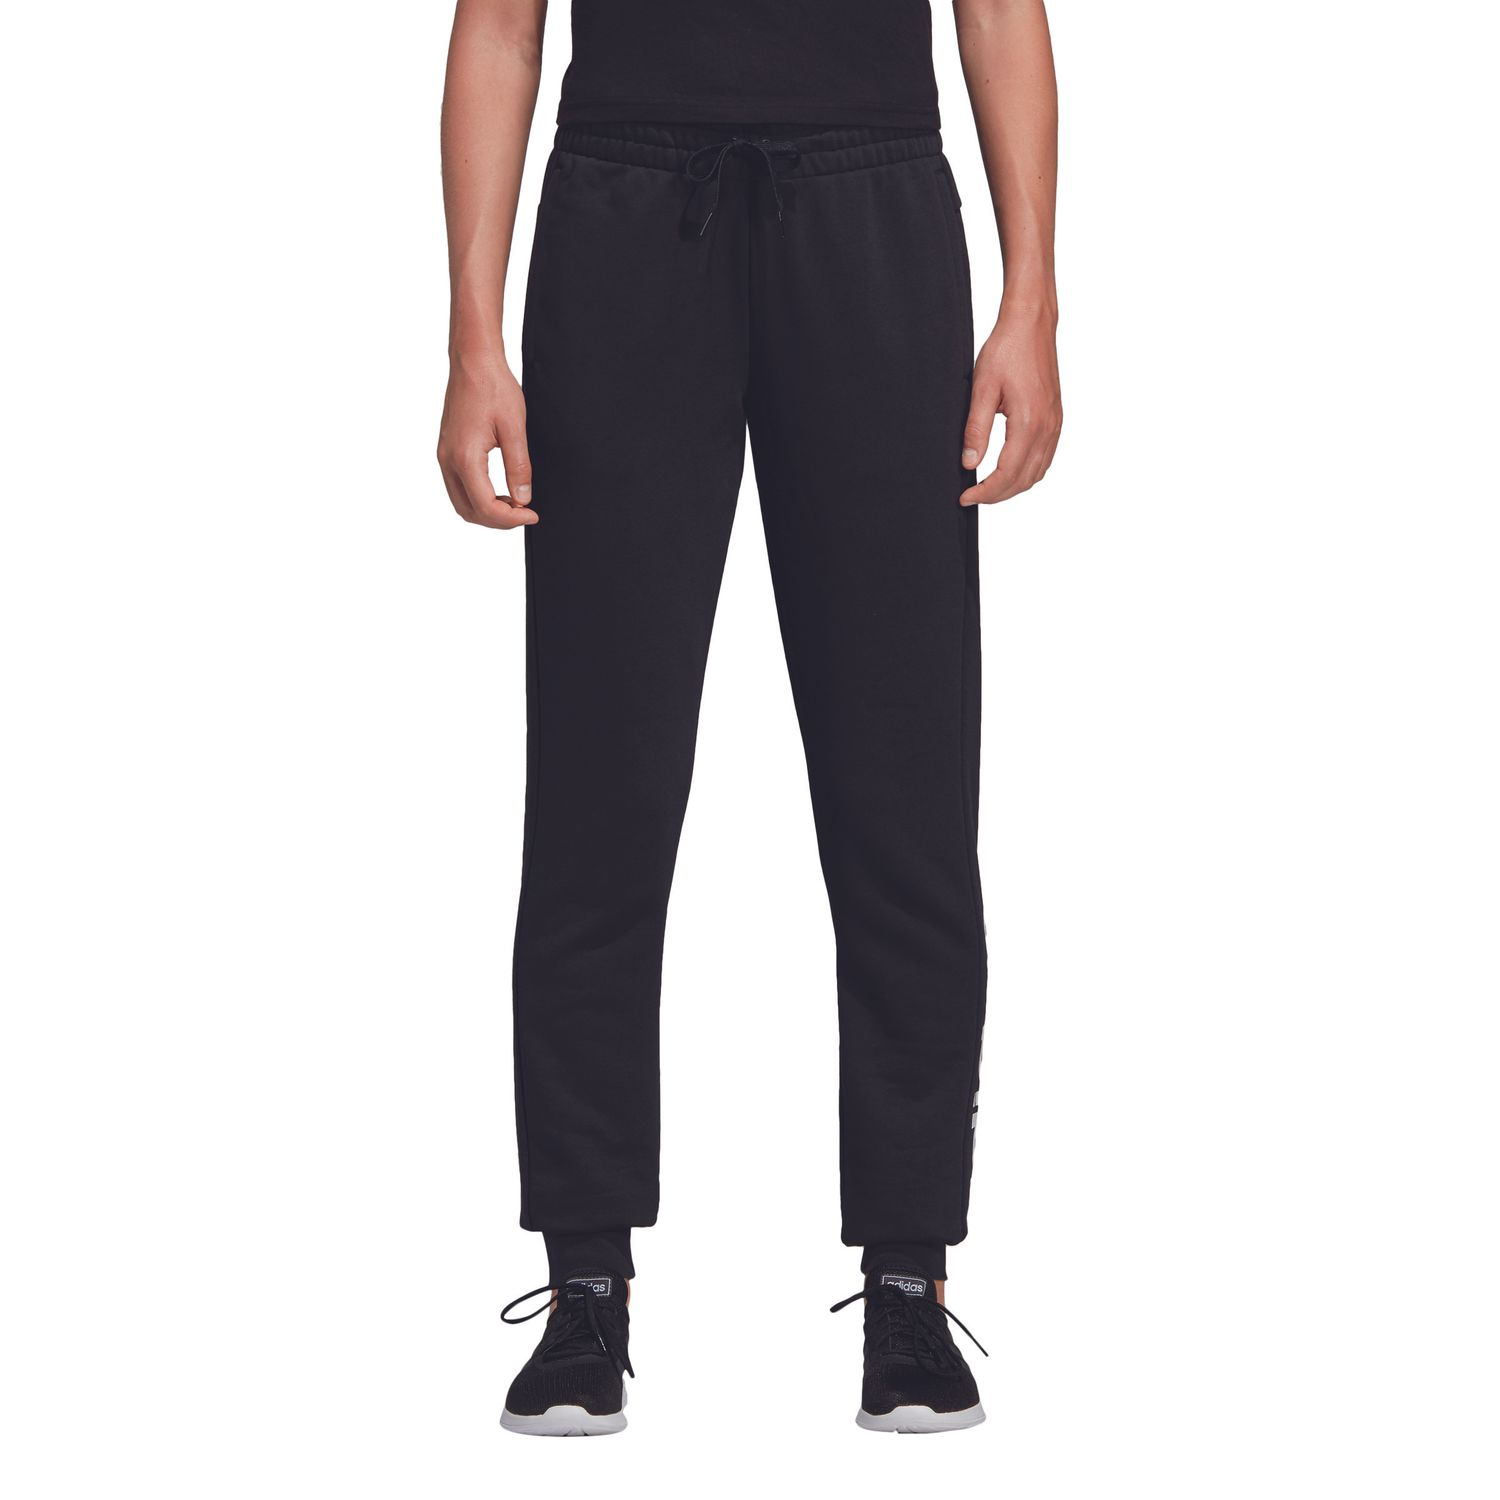 adidas Essentials Linear Damen Trainingshose – Bild 2